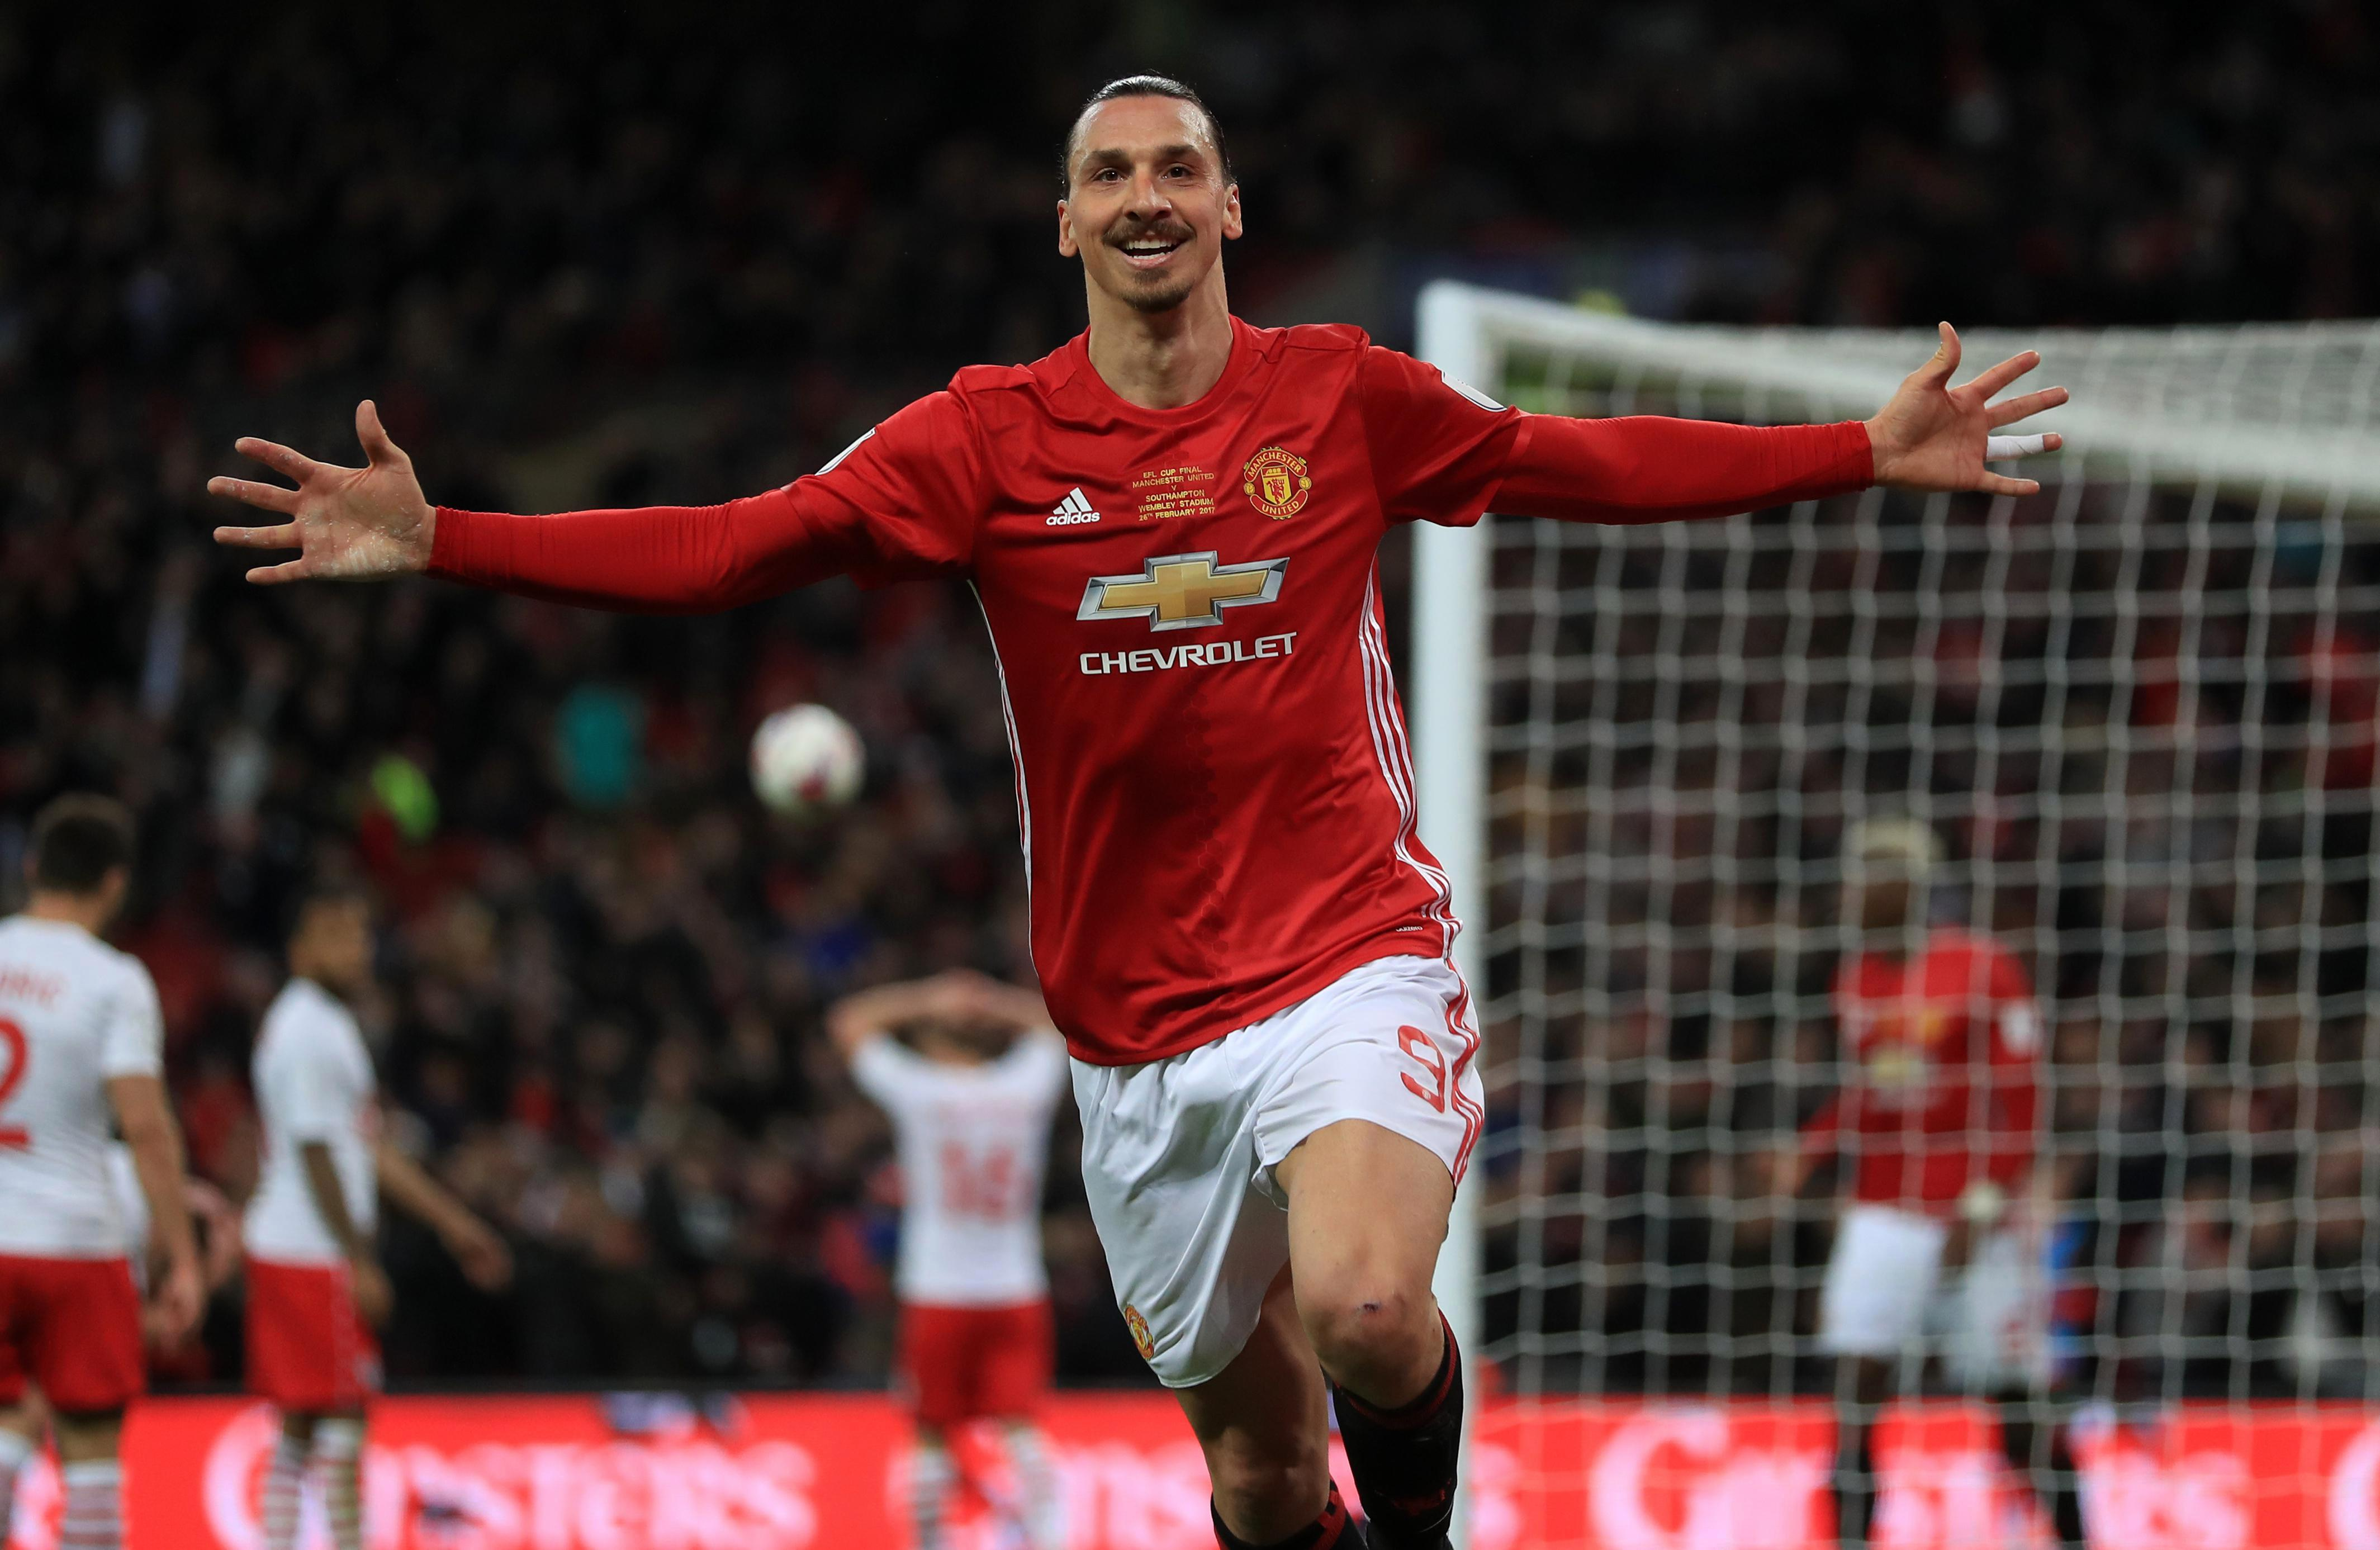 Zlatan Ibrahimovic could be making a return to Manchester United